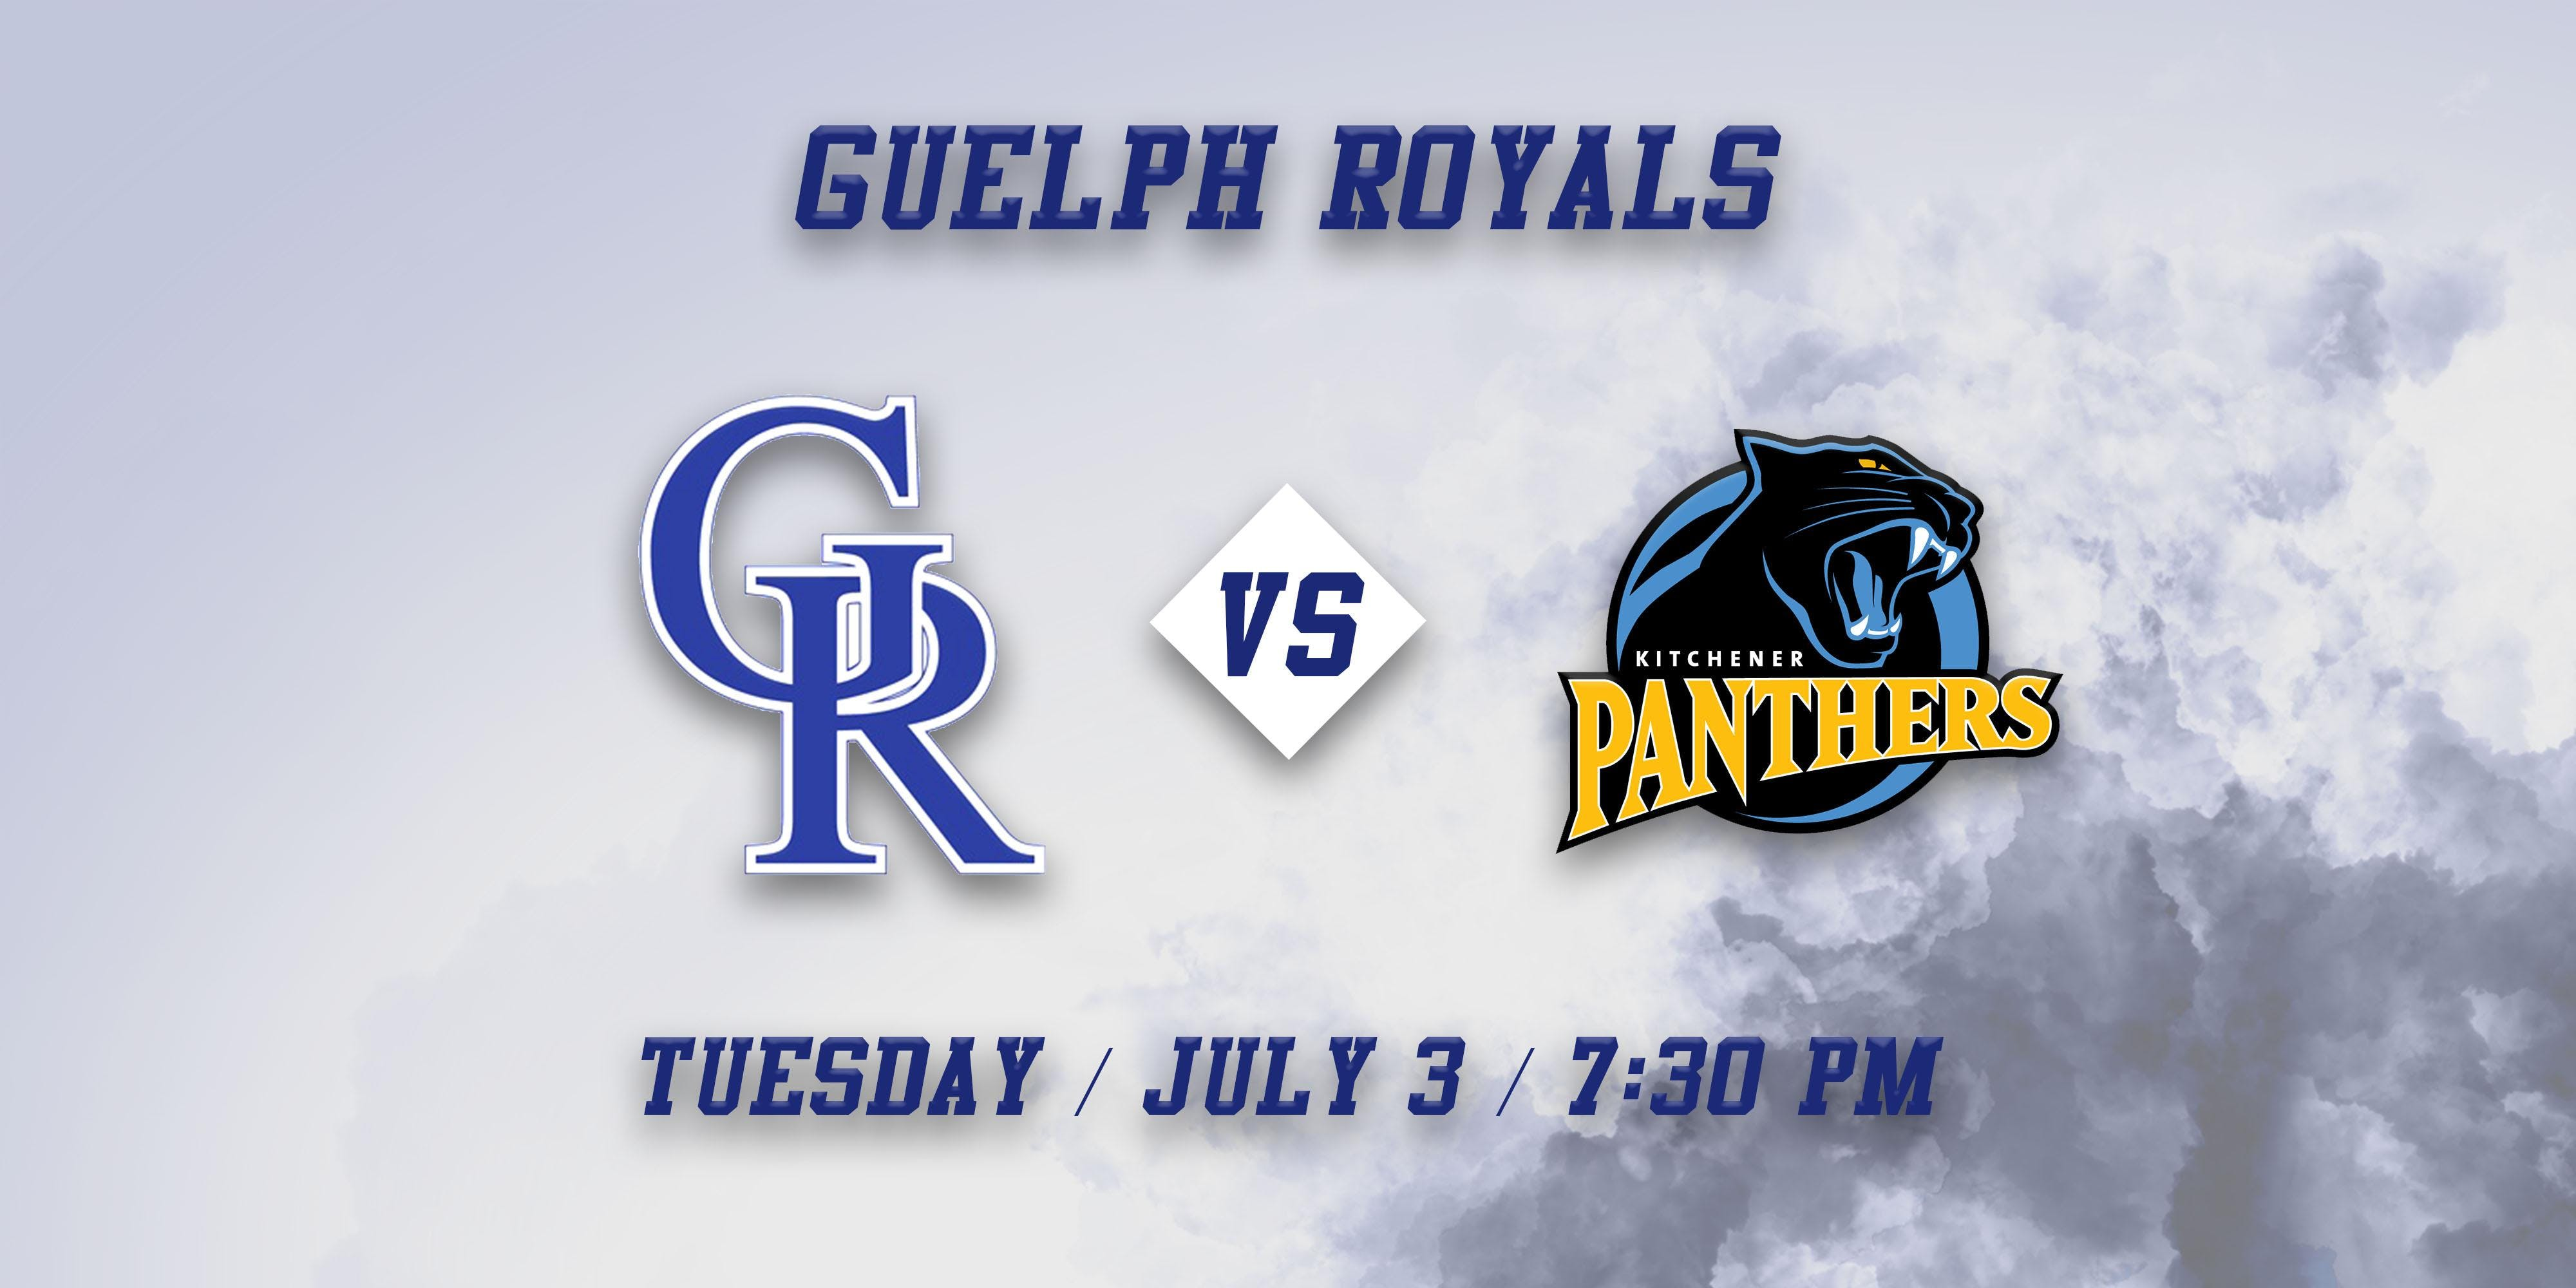 Kitchener Panthers vs Guelph Royals at David E. Hastings Stadium, Guelph